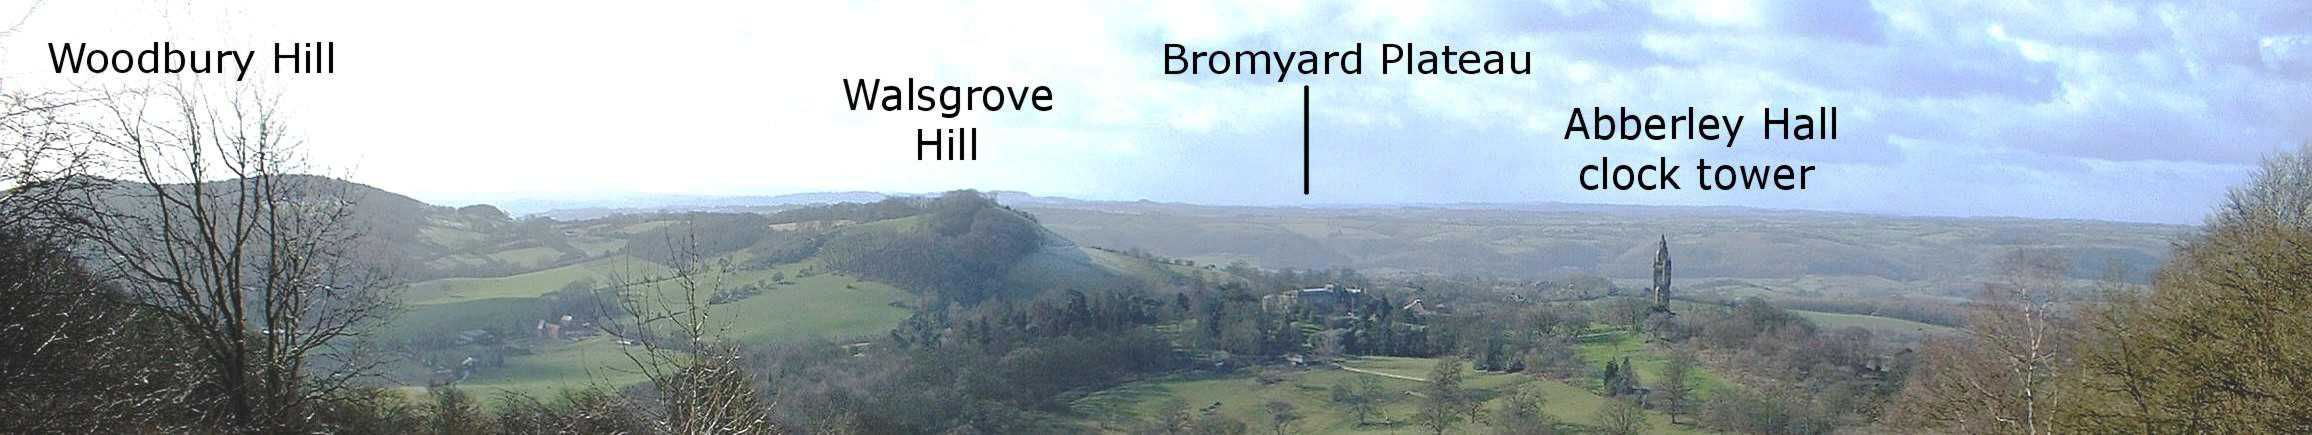 View from Walsgrove Hill - Abberley